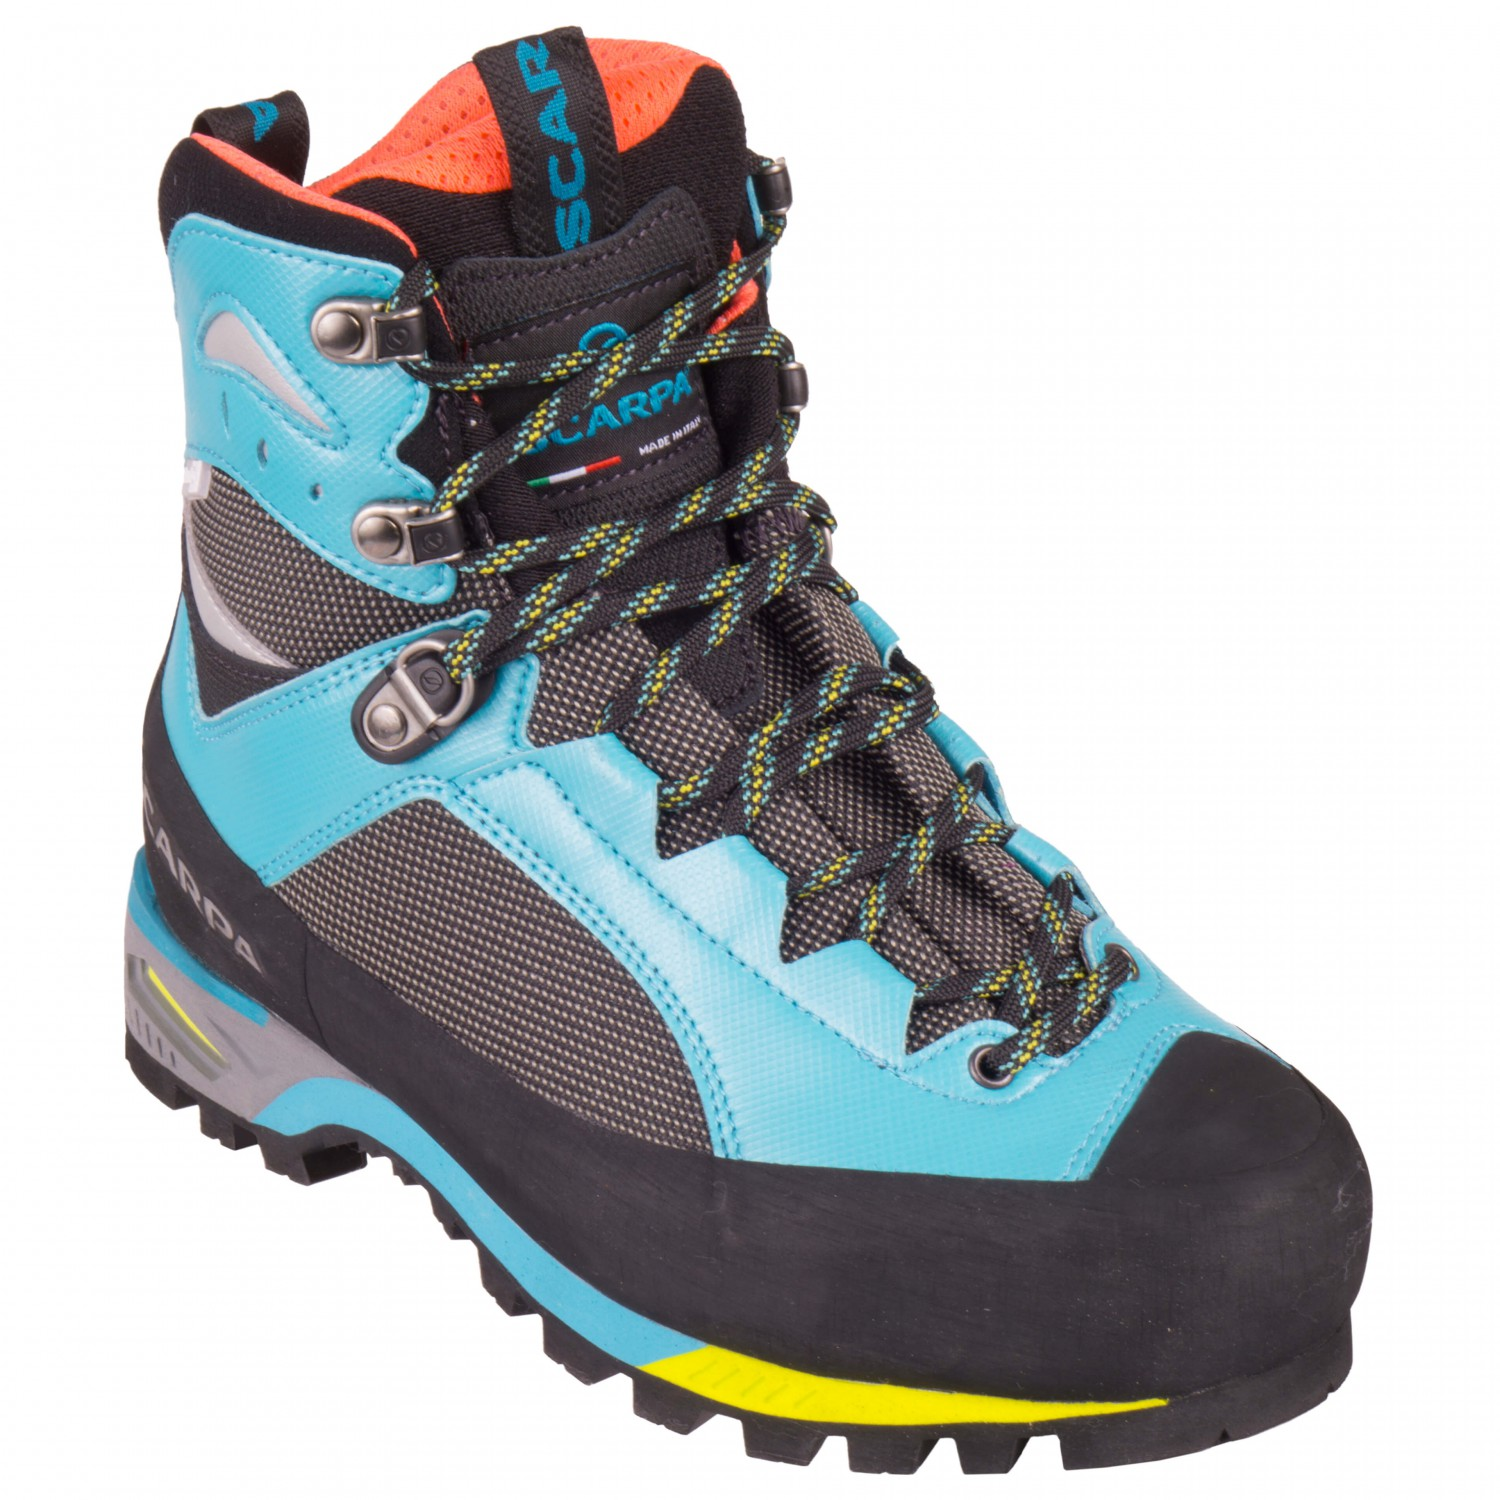 Scarpa Charmoz Od Mountaineering Boots Women S Free Uk